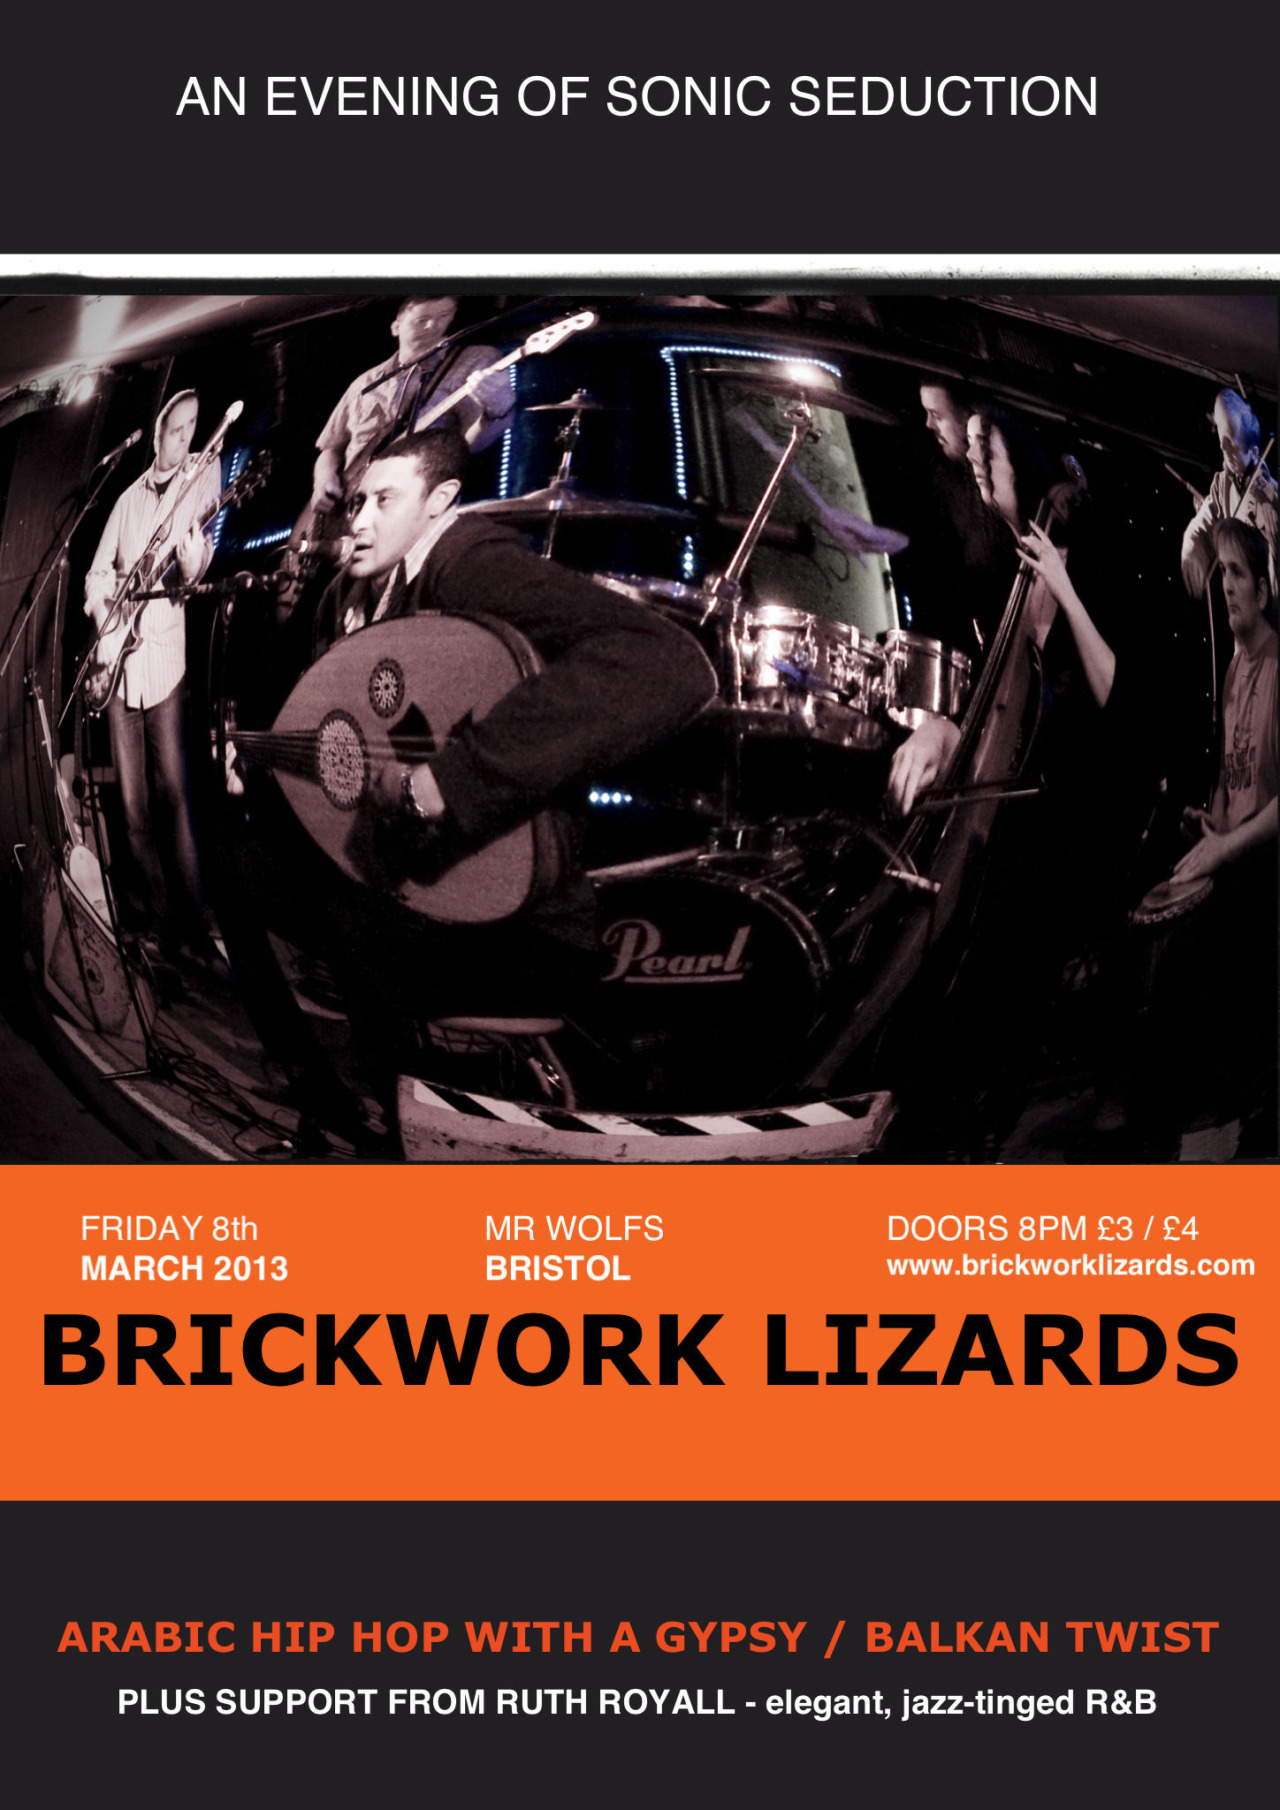 For those of you in the Bristol area, may I recommend a cheeky night out with the Brickwork Lizards? They're really rather good and I'm honestly not saying that because my husband's in the band, its because they really are THAT good. You can find out more about them here.